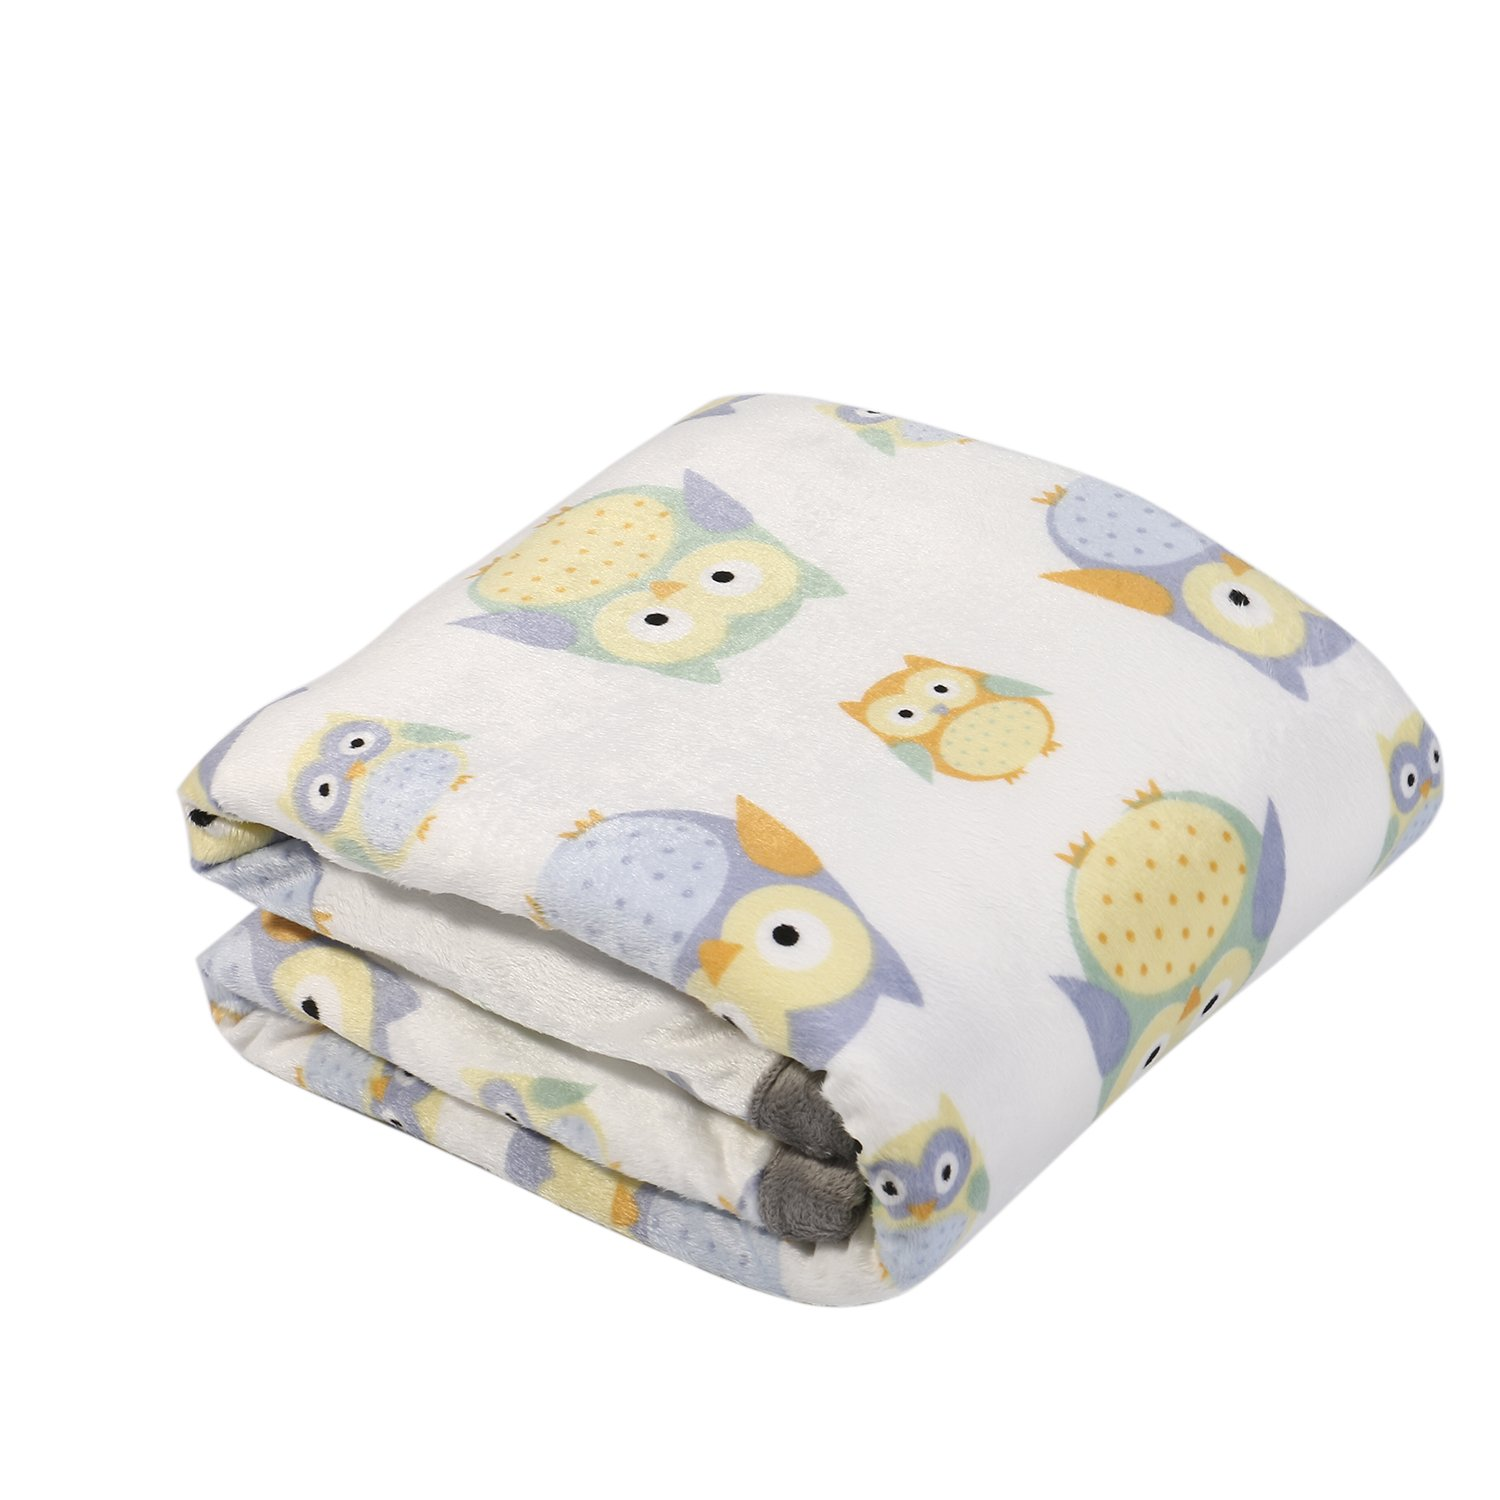 Sunshine Breathable Baby Blanket Print Fleece Best Registry Gift for Newborn Soft- Perfect for Prince and Princess 30 x 40